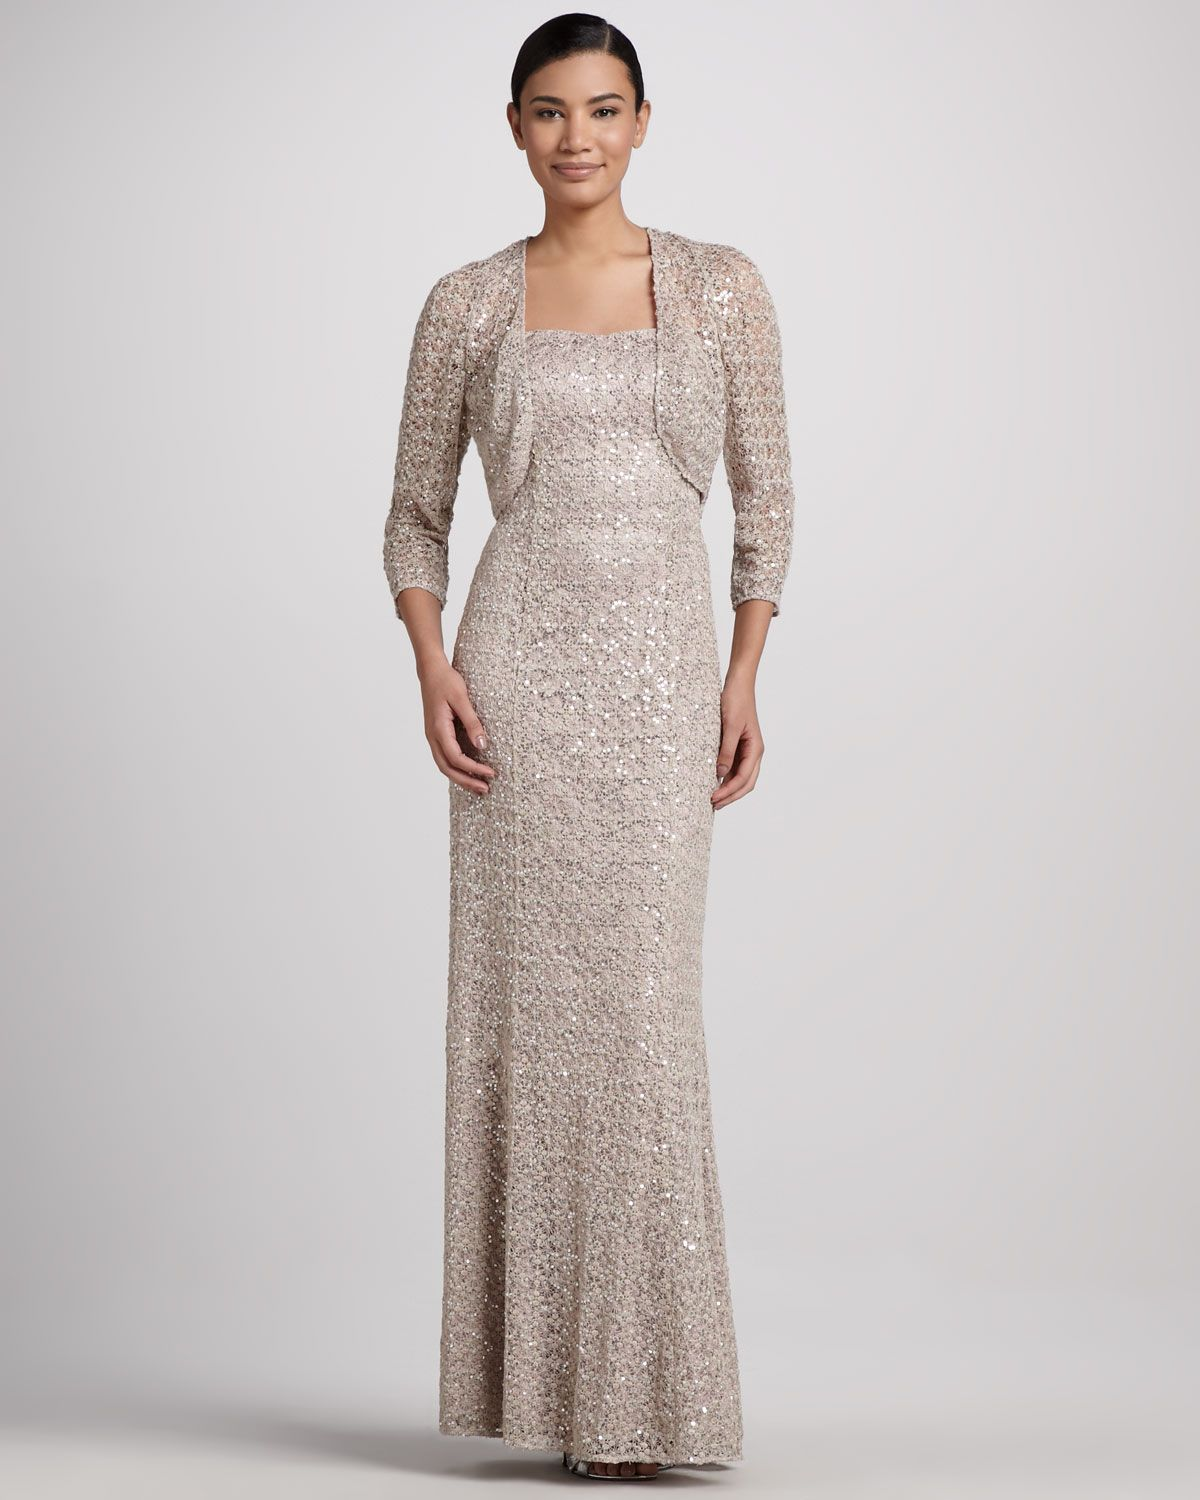 Kay unger new york strapless gown sheer sequined lace bolero kay unger new york strapless gown sheer sequined lace bolero neiman marcus ombrellifo Image collections